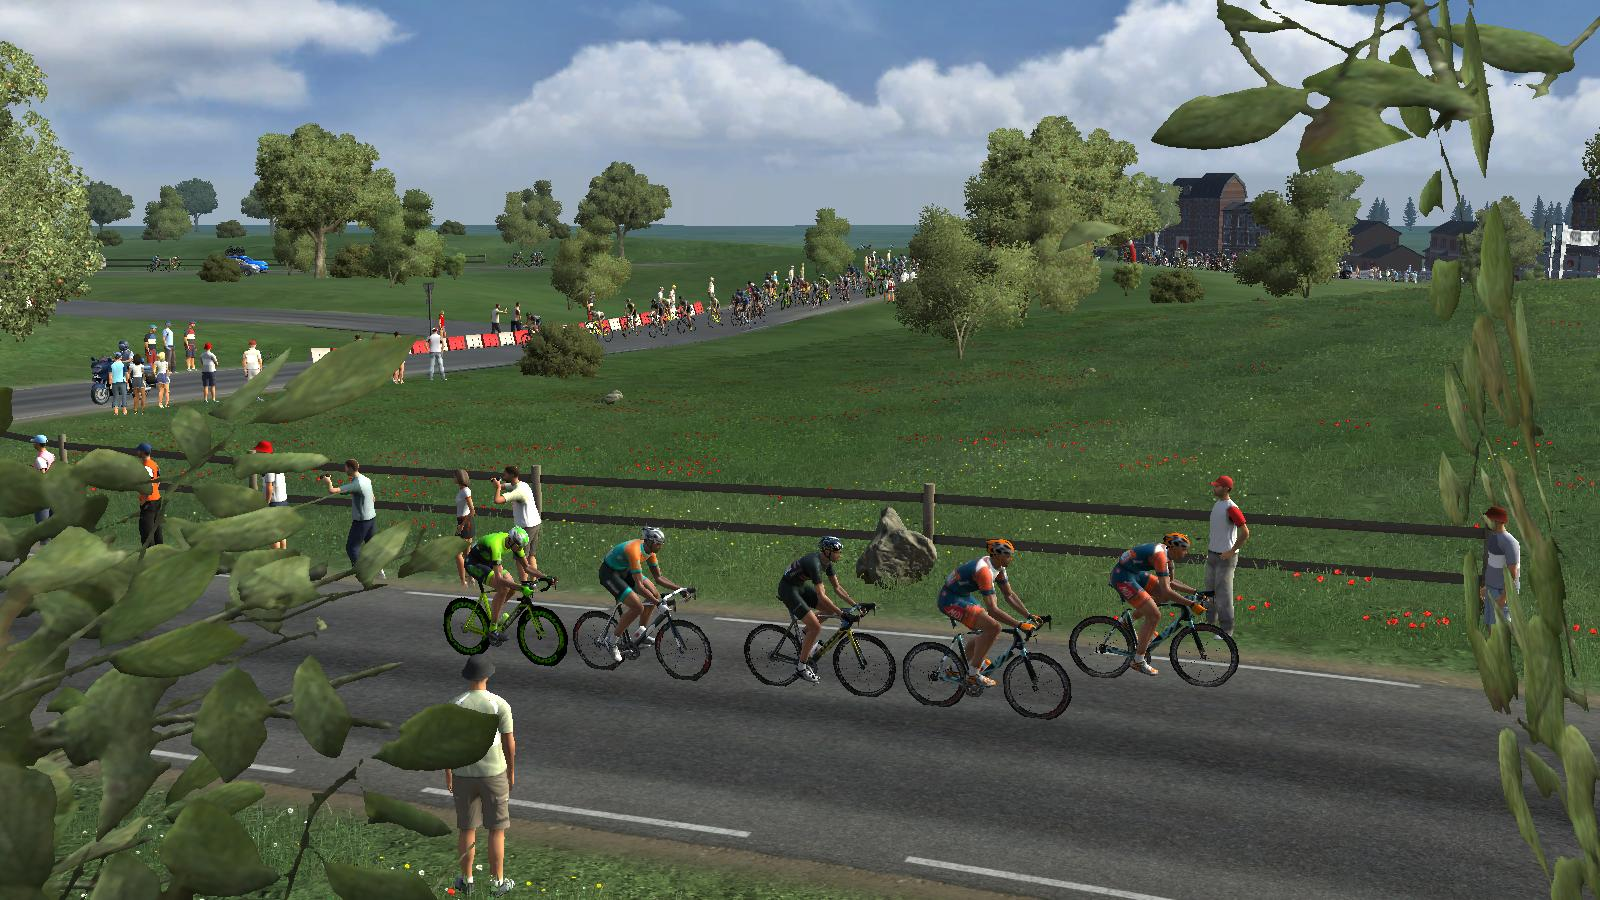 pcmdaily.com/images/mg/2019/Races/PTHC/Rheden/21.jpg